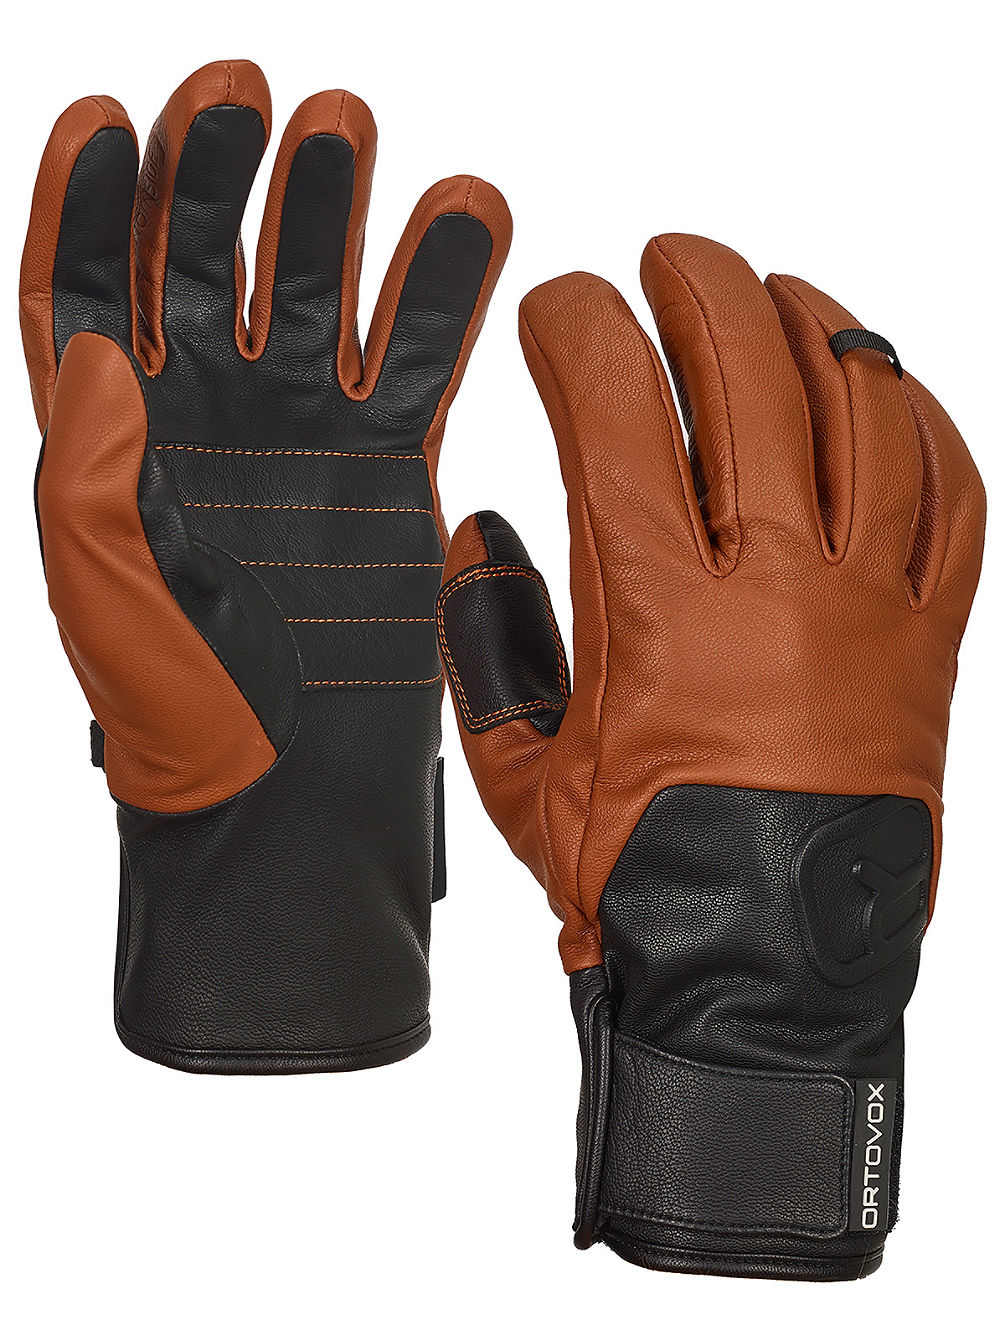 Swisswool Leather Gants